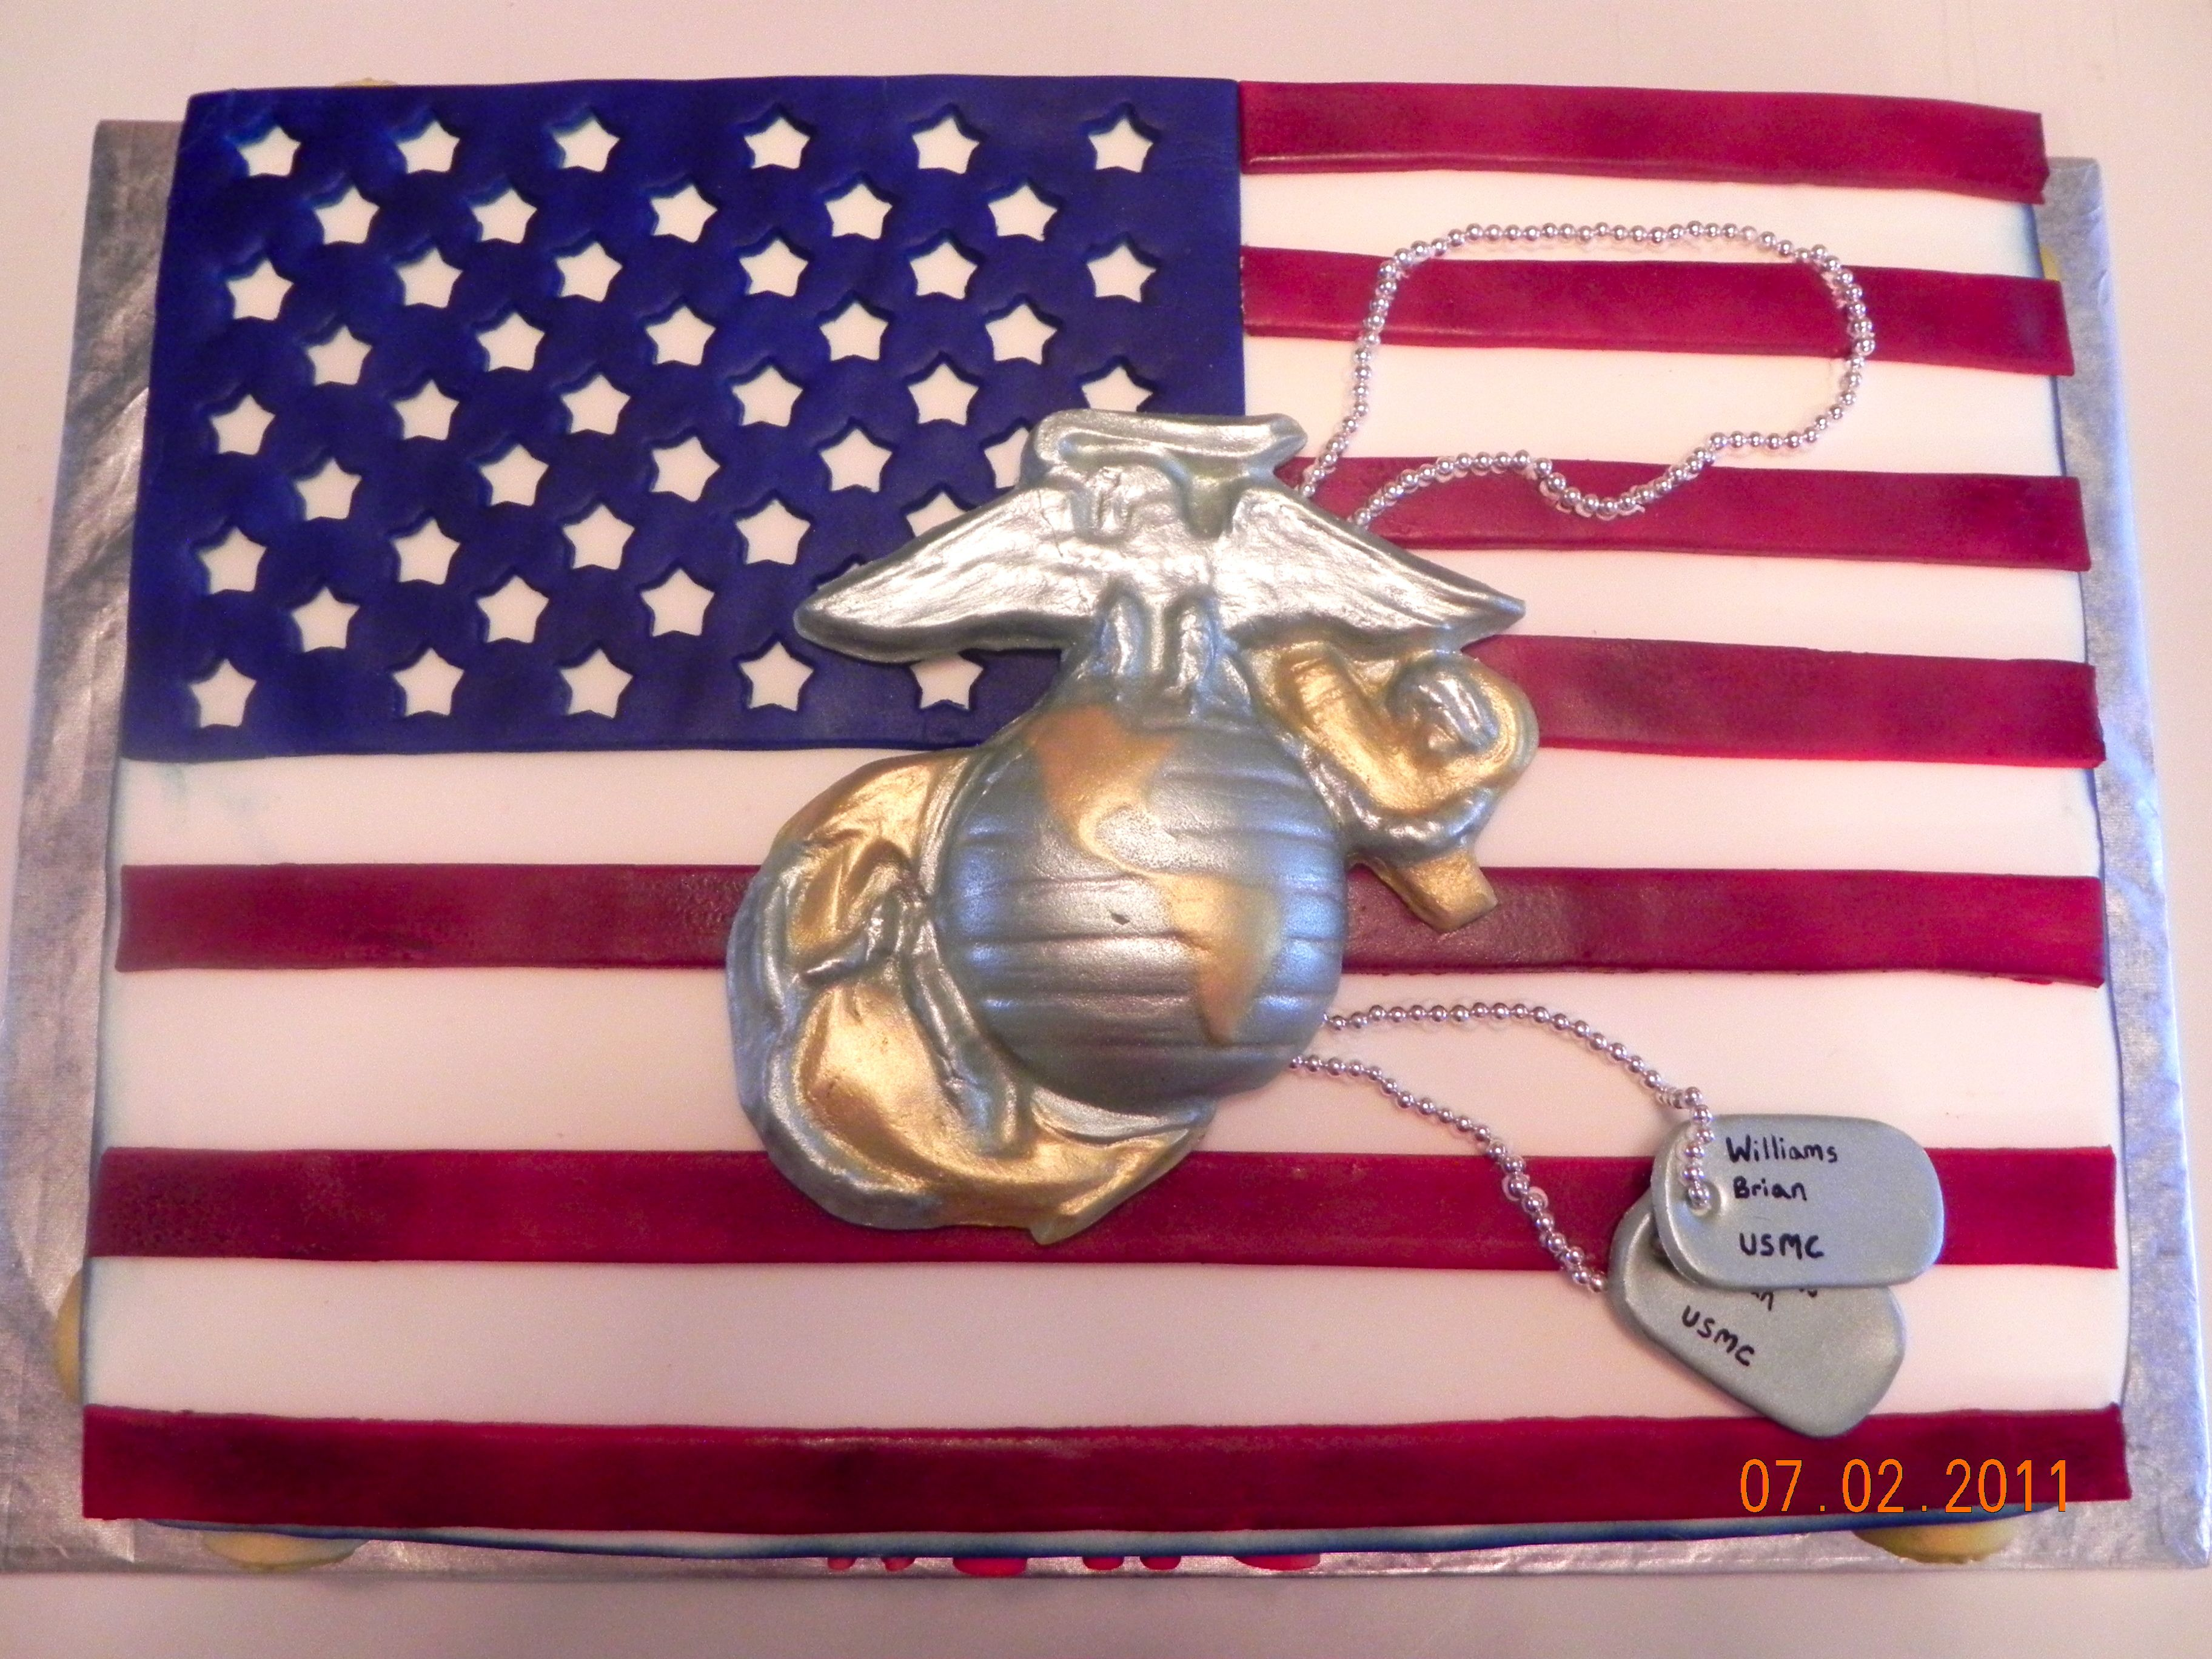 ad2a22e606b Marine Cake - This is a cake that I made for a friend whose son just  graduated from Marine boot camp